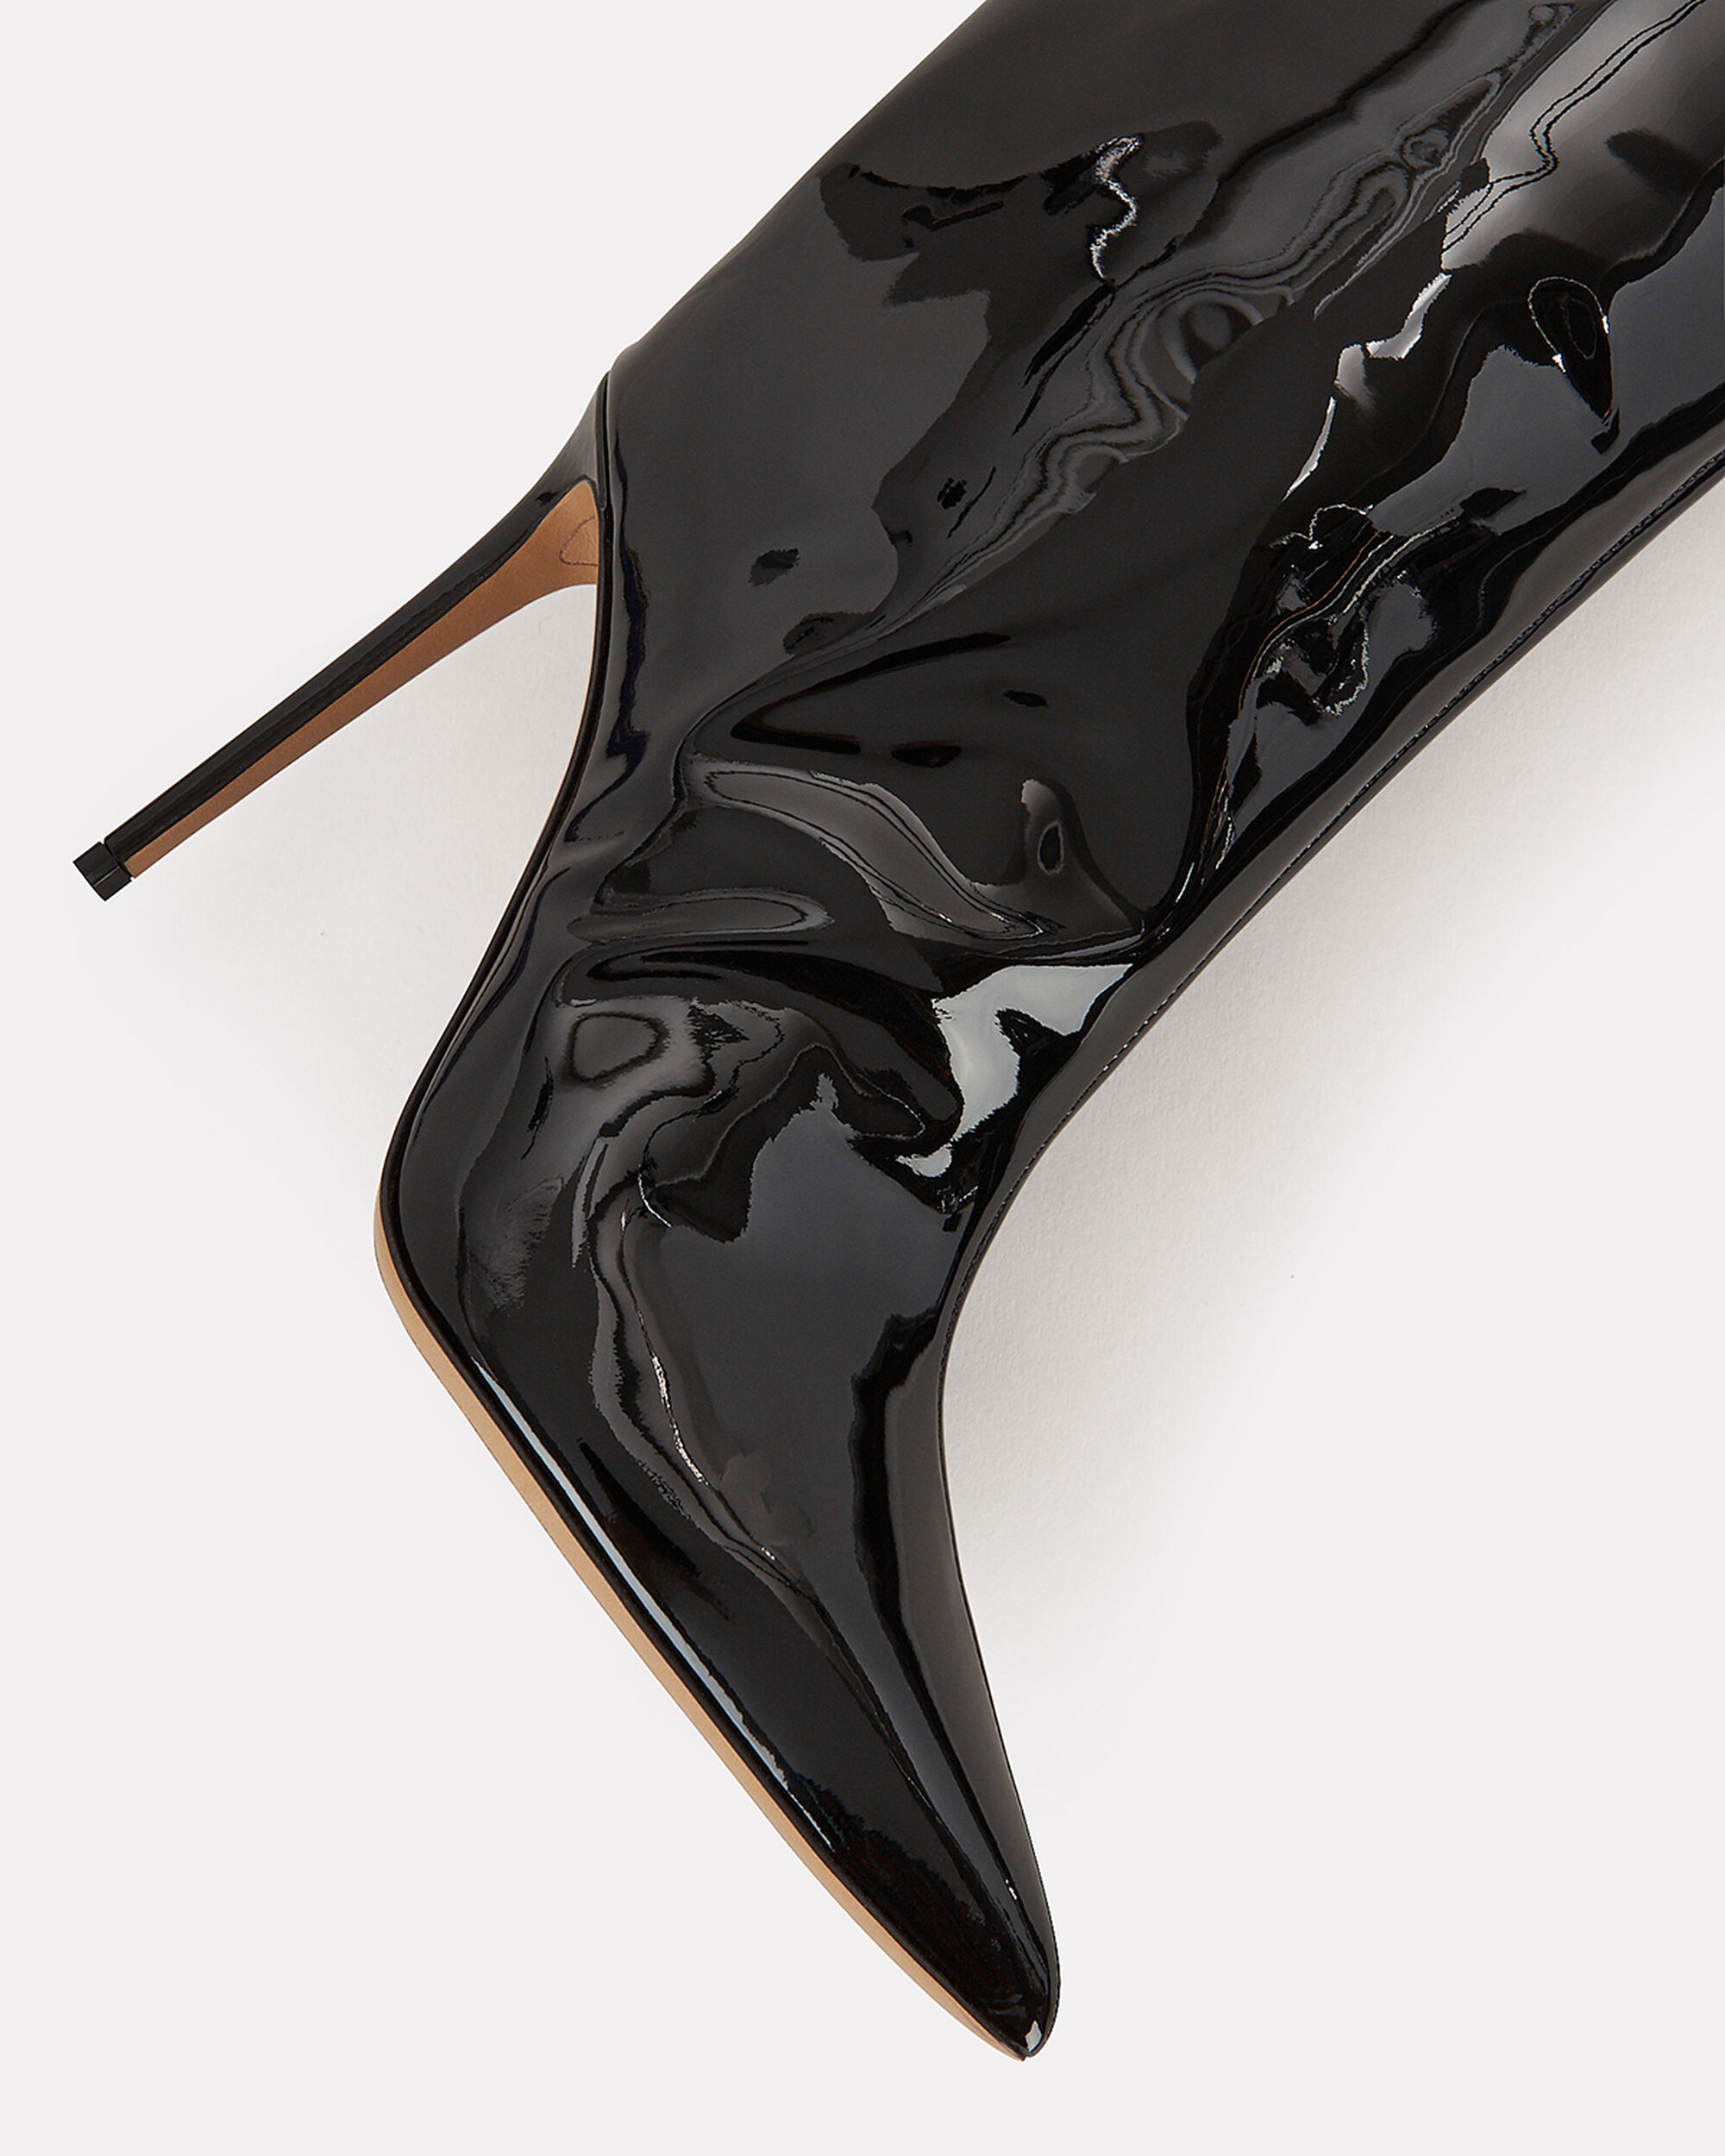 Alex Patent Leather Black Boots, BLACK, hi-res